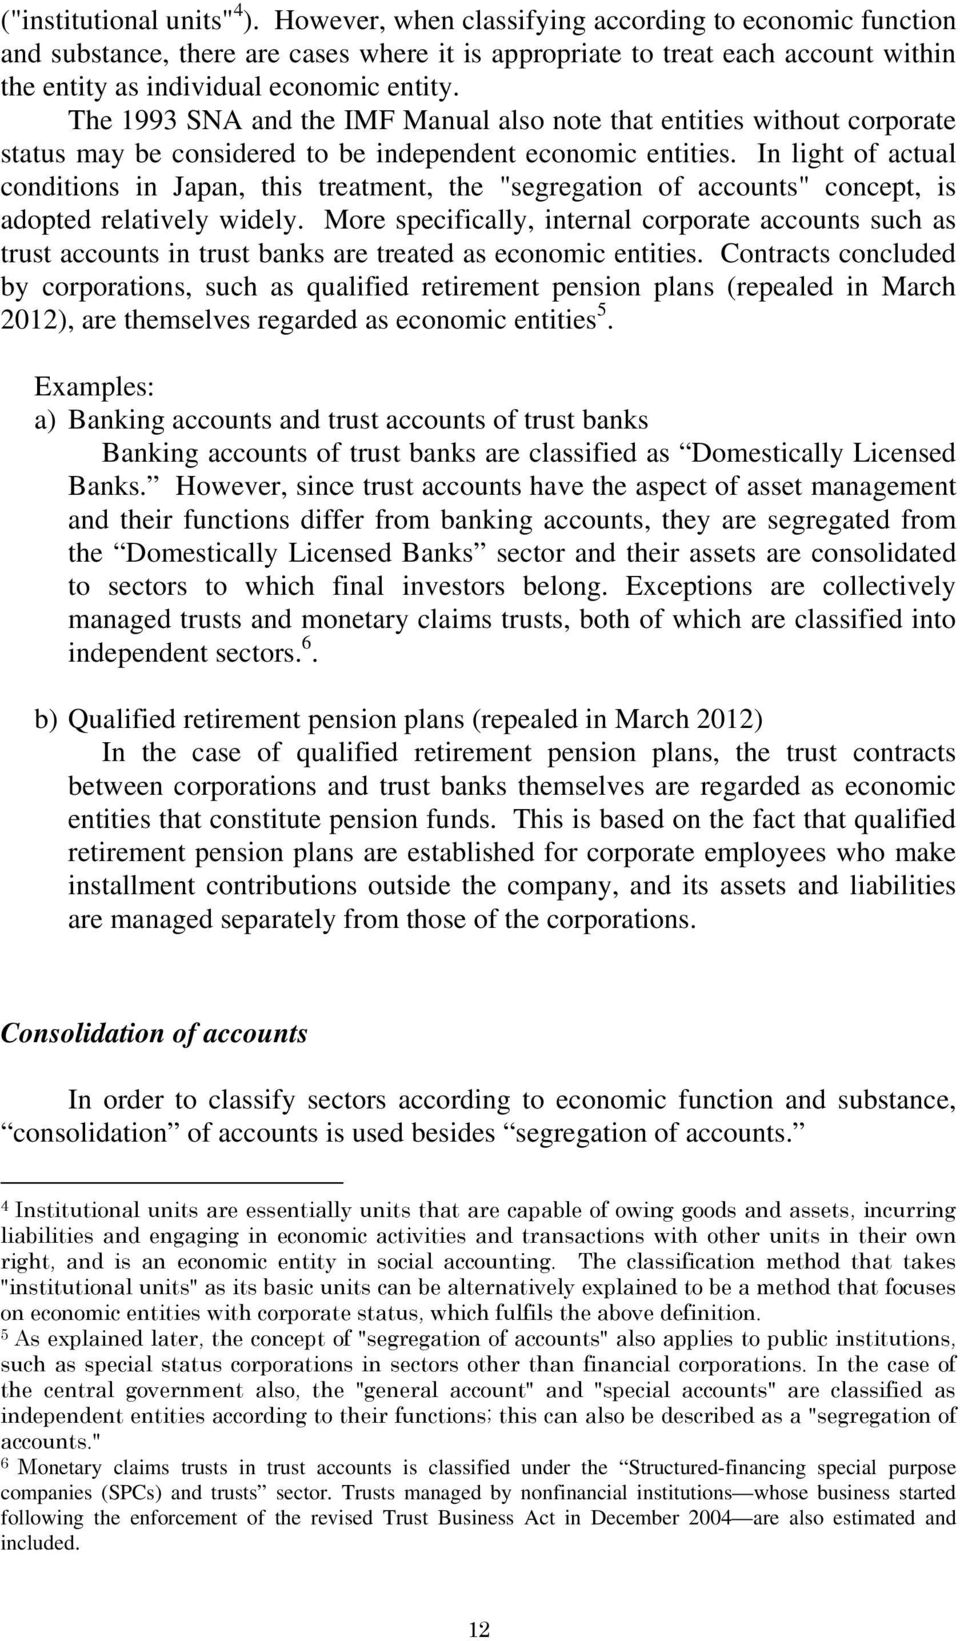 The 1993 SNA and the IMF Manual also note that entities without corporate status may be considered to be independent economic entities.